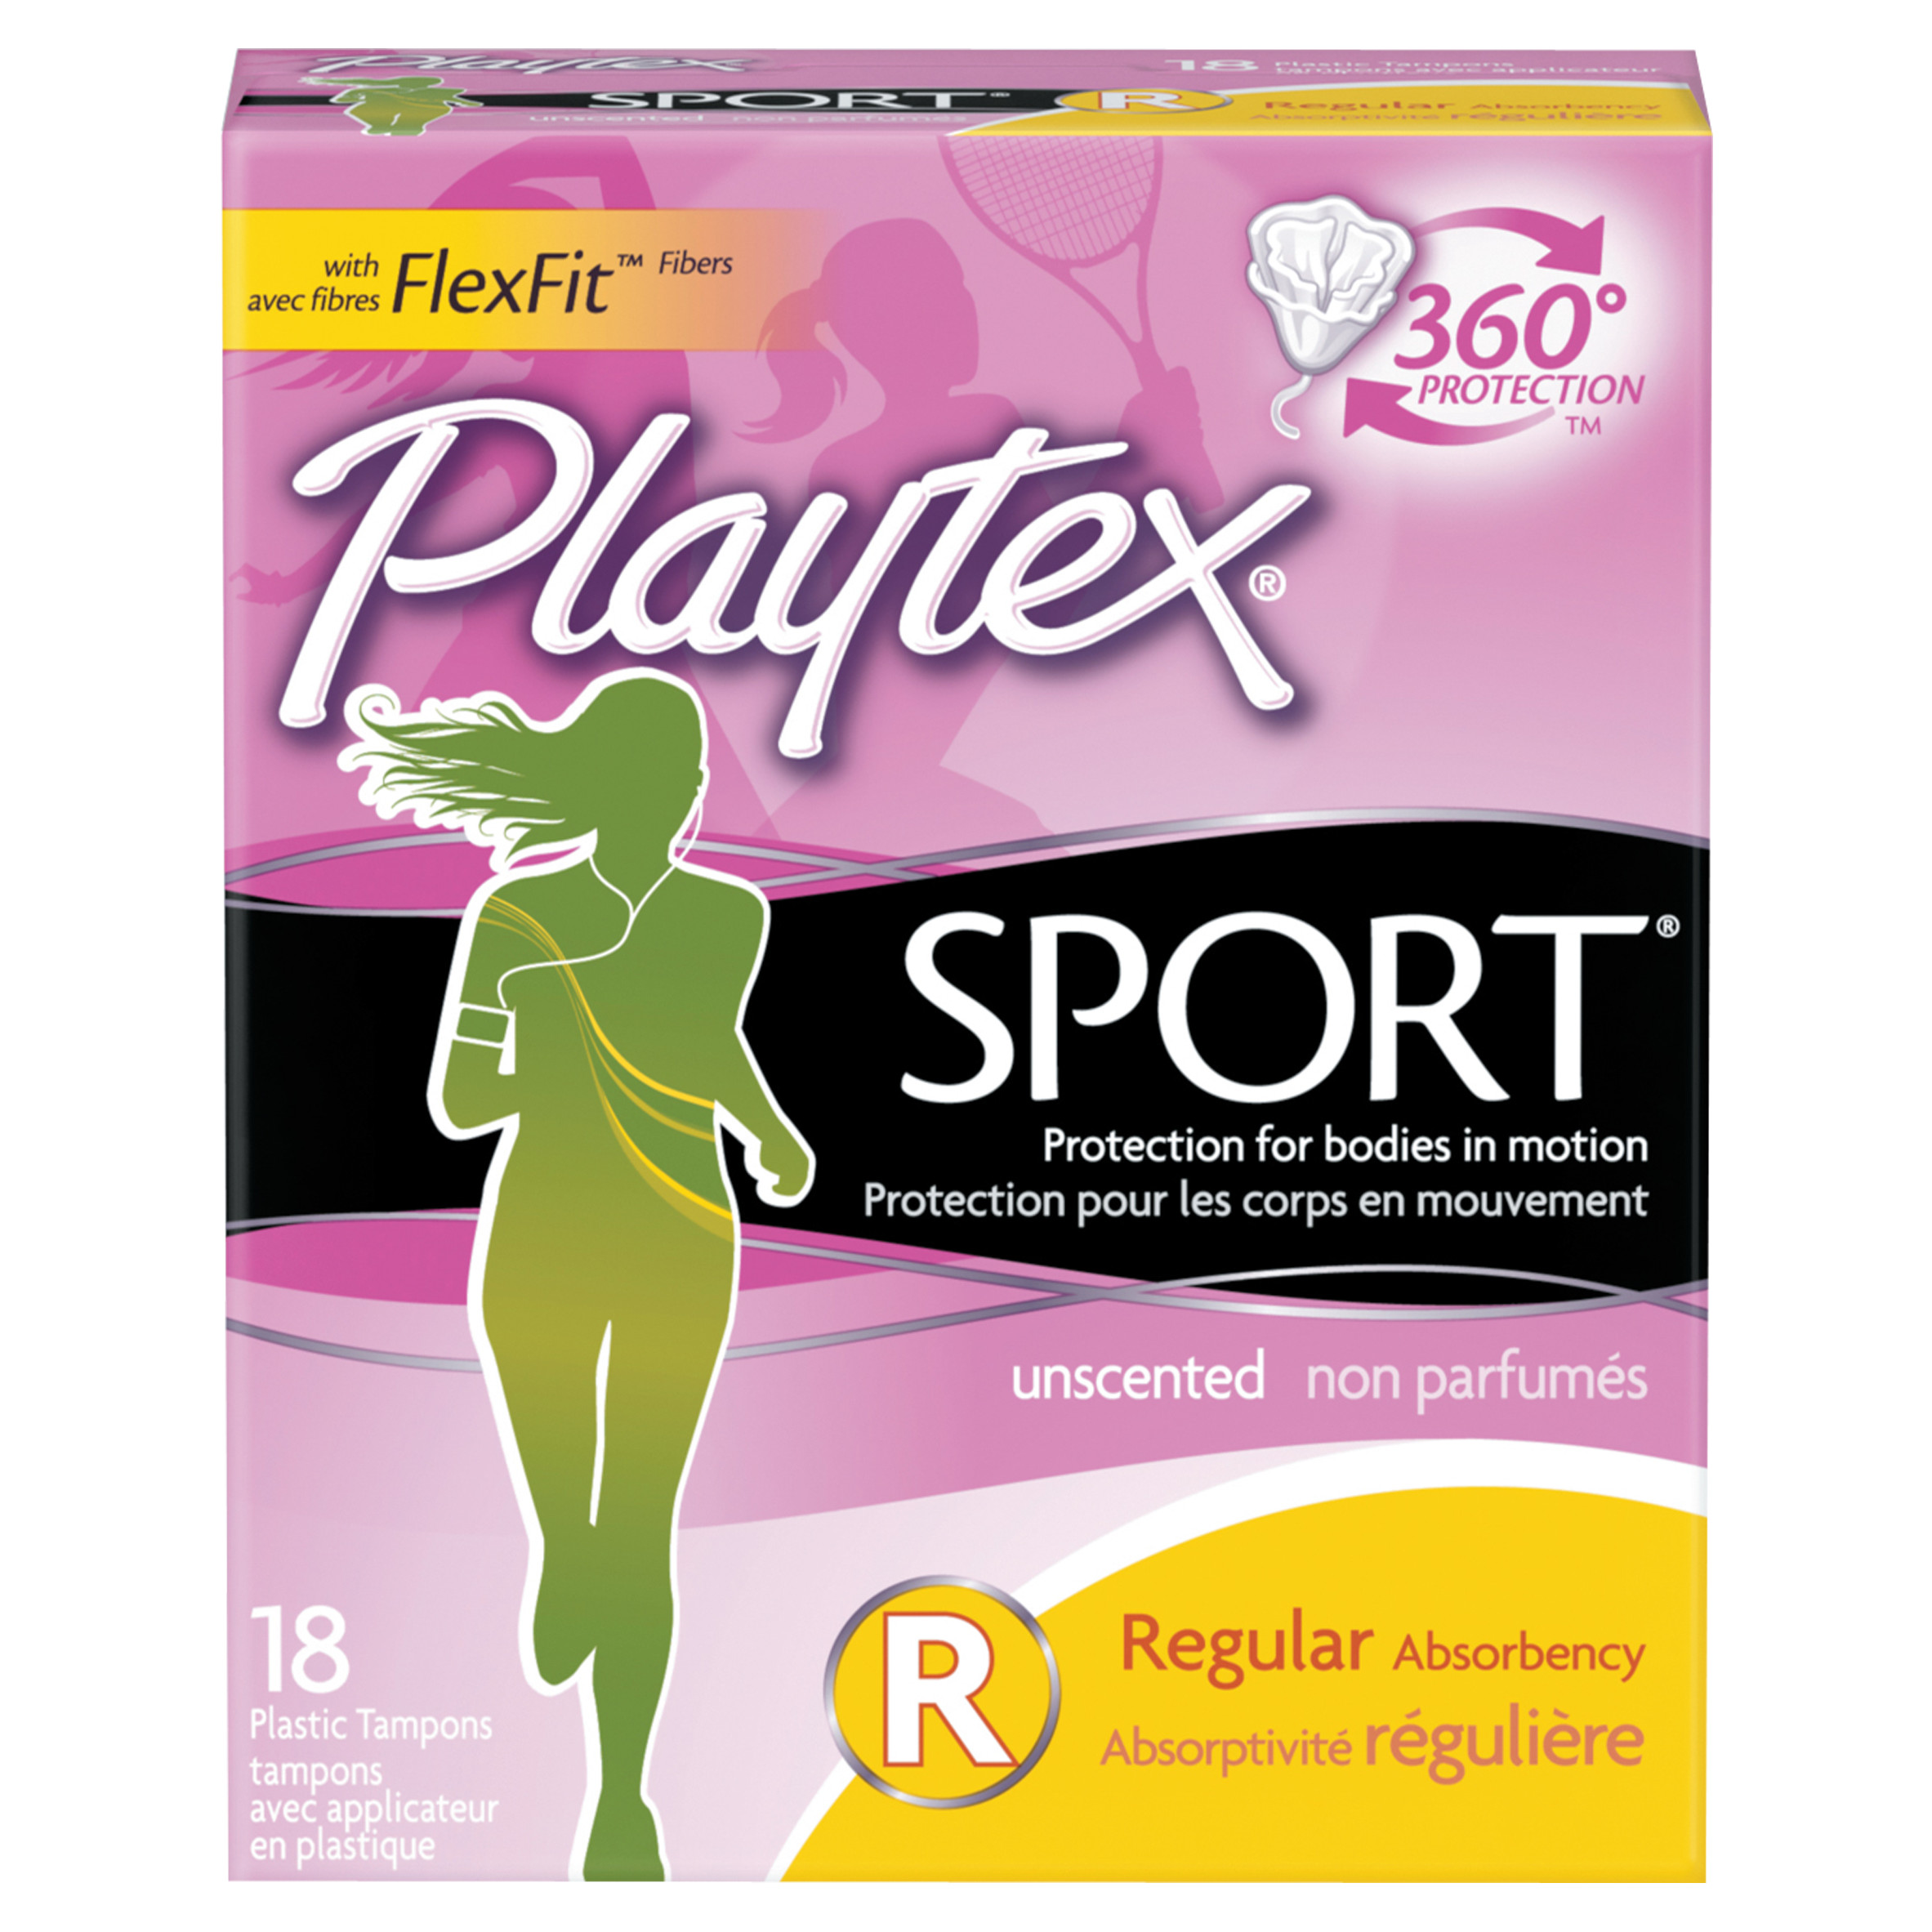 Playtex Sport Tampons Unscented Regular Absorbency - 18 Count